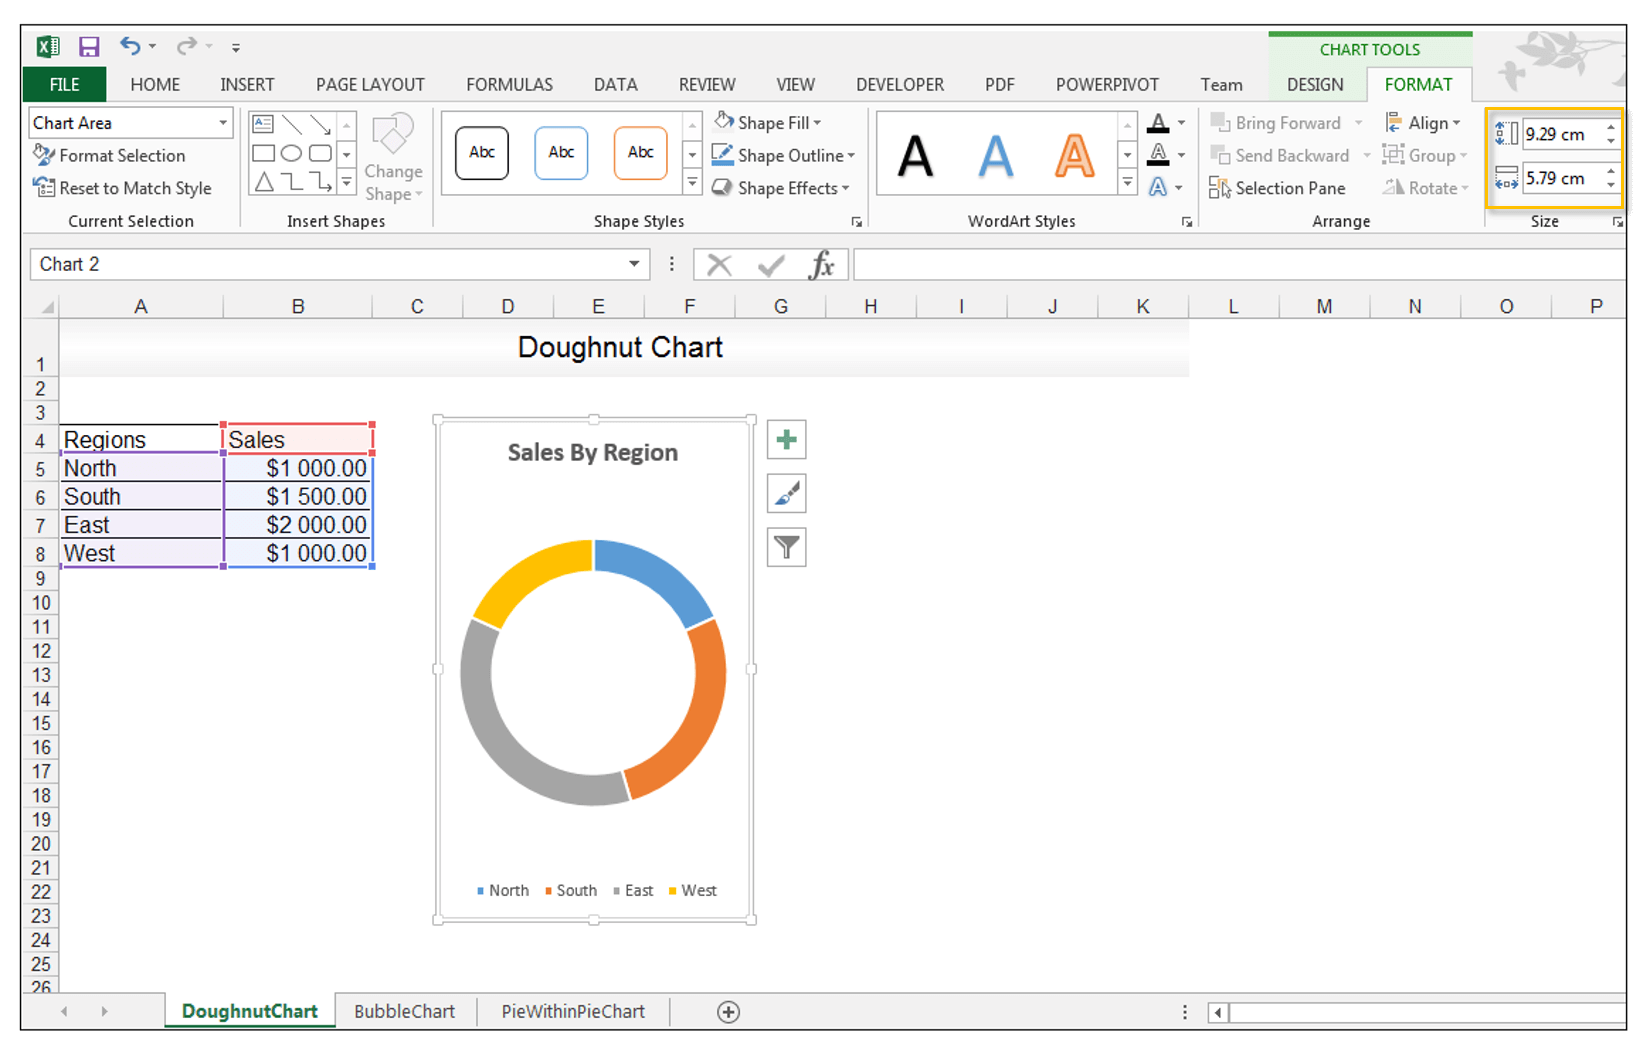 Doughnut Chart in Excel - Image 5